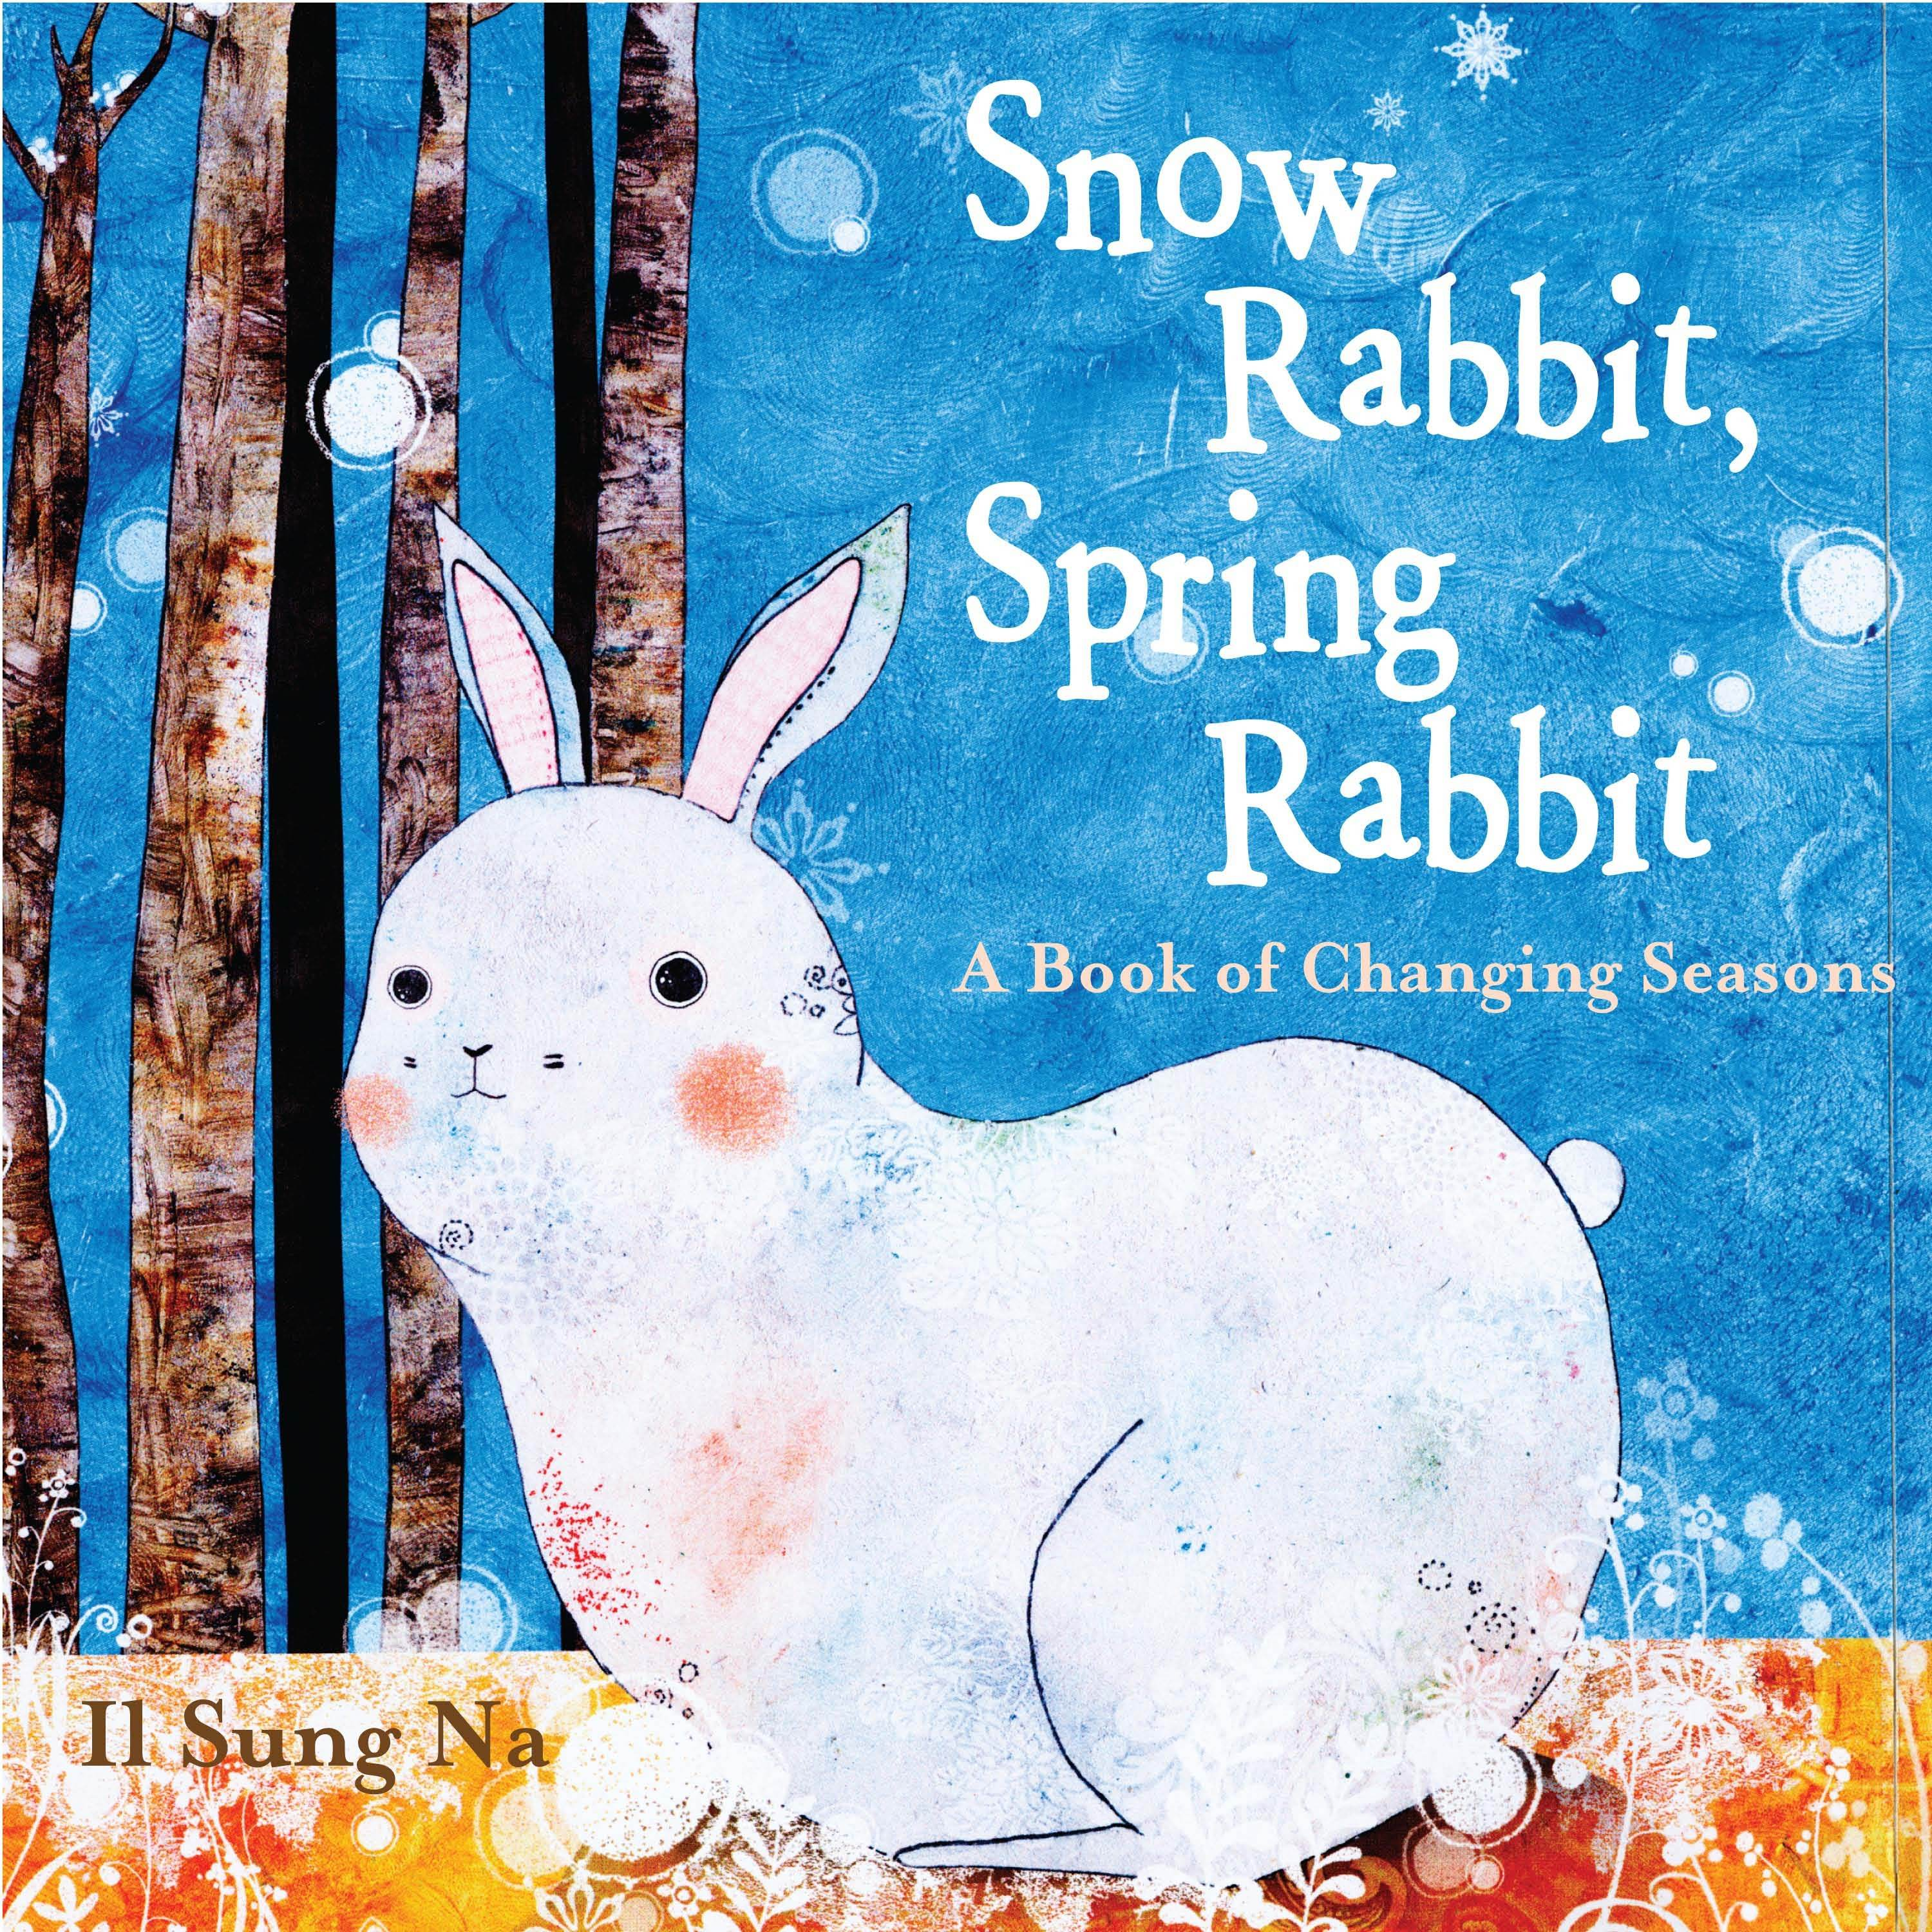 Kids Book Reviews For Spring By Green Bean Books